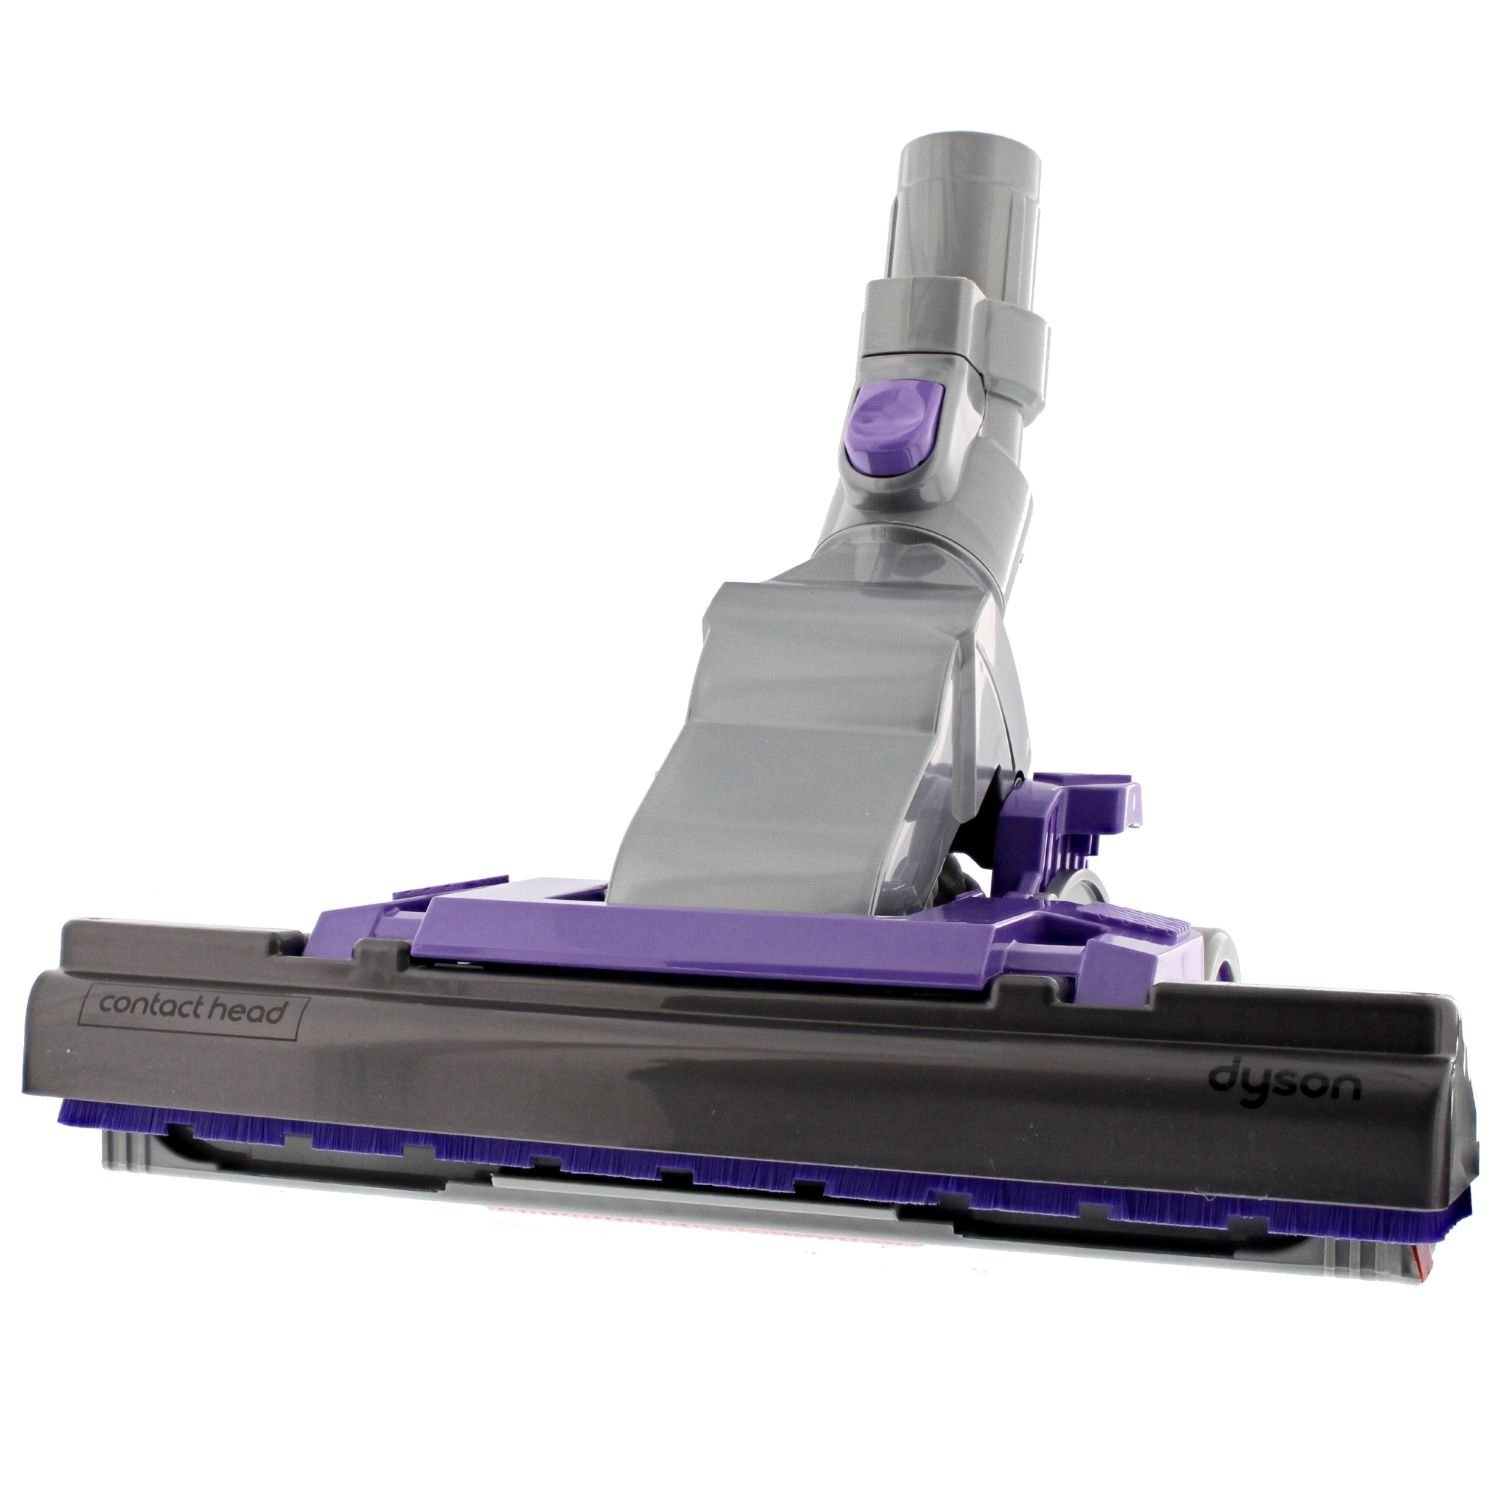 Amazon.com: Dyson 904486-08 Head Floor Tool Suitable for Dyson DC08 Vacuum  Cleaner: Kitchen & Dining